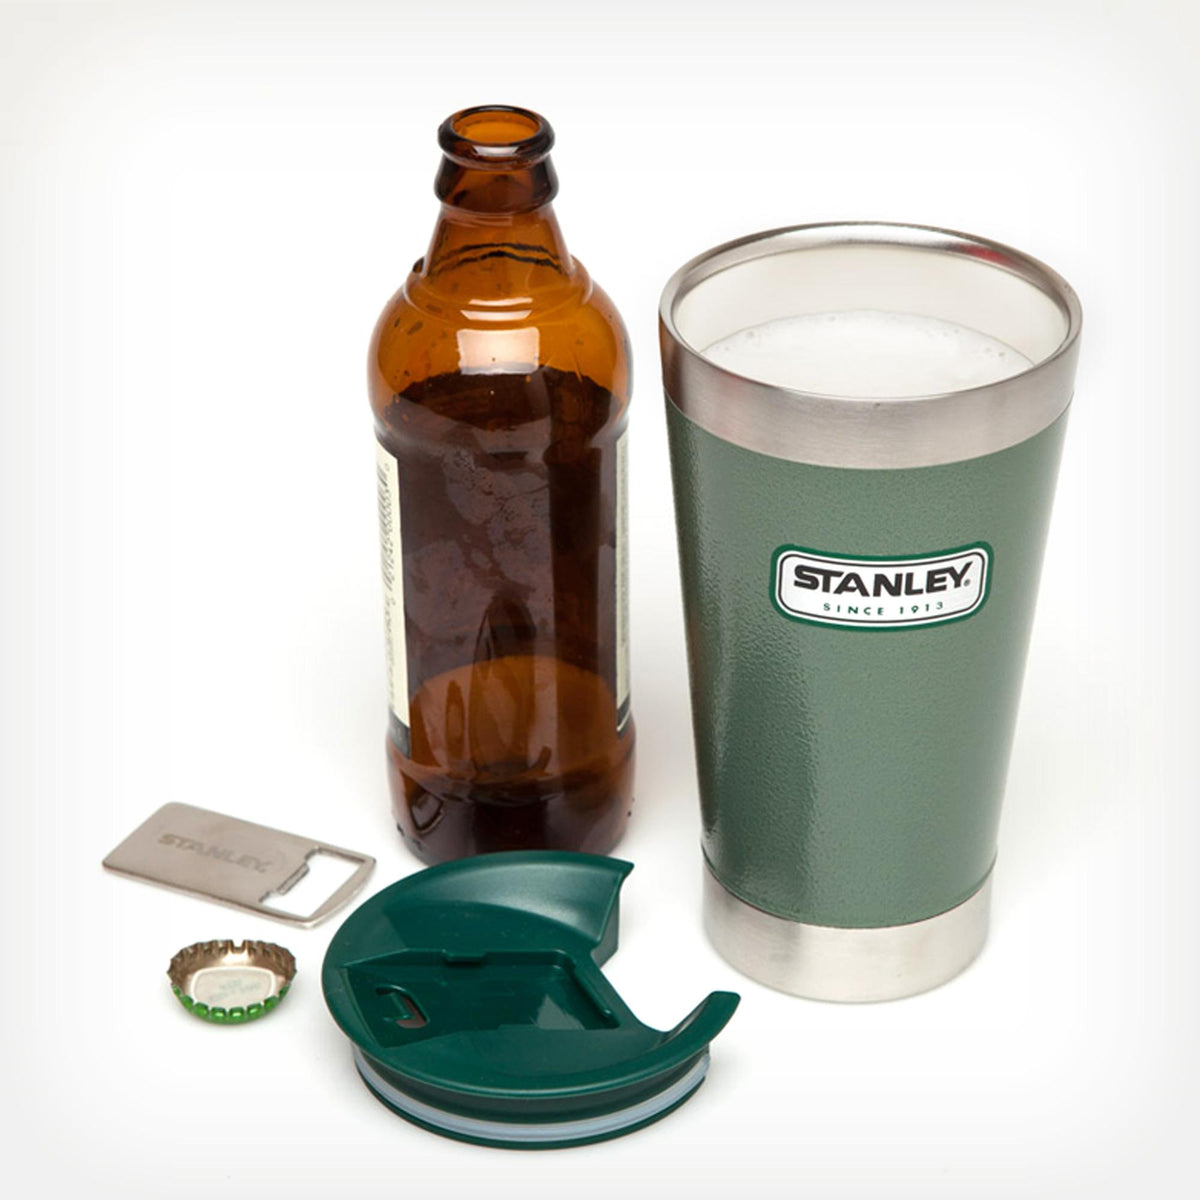 Stanley-Pint Glass 473ml Replacement Lid 82mm + Bottle Opener-Replacement Part-Green-Gearaholic.com.sg